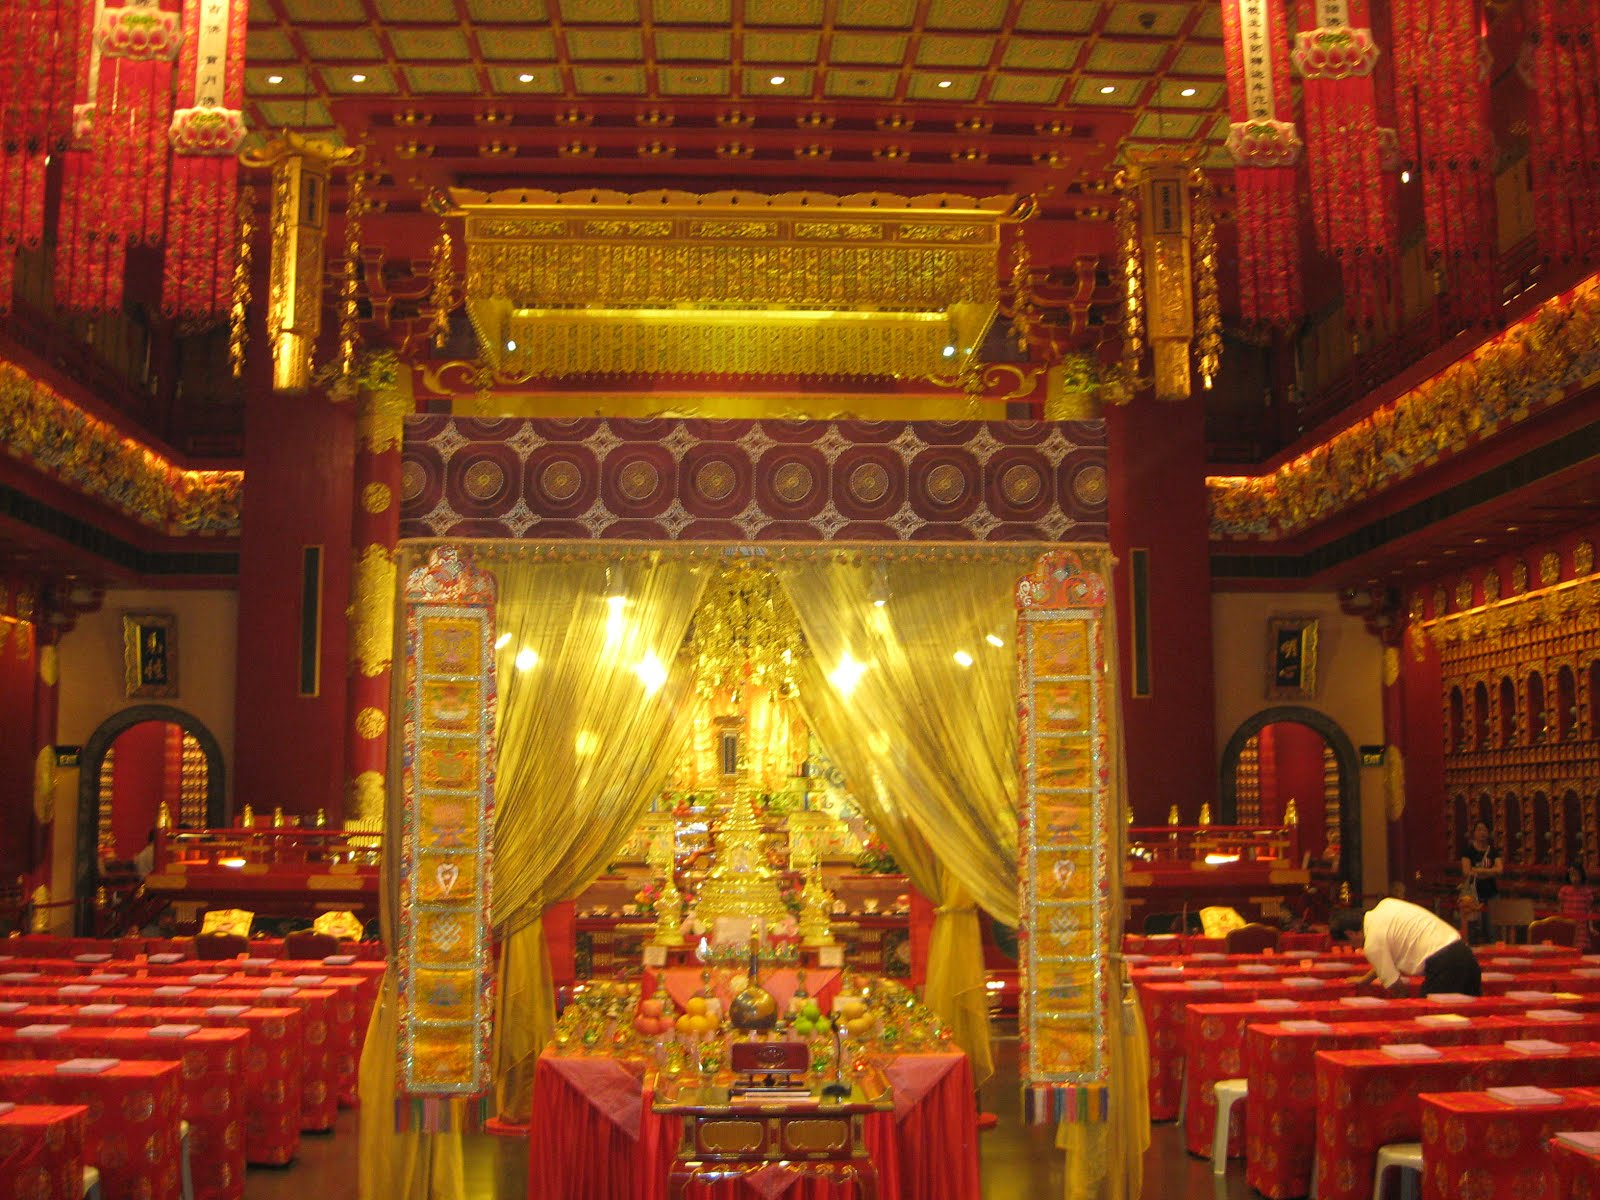 temple of tooth relic Temple of the sacred tooth relic, kandy sri lanka photo about kandy, nopeople, maligawa, historical, city, kingdom, ancient, heritage, buddhism, buddhist, gloomy, buddha - 54897200.